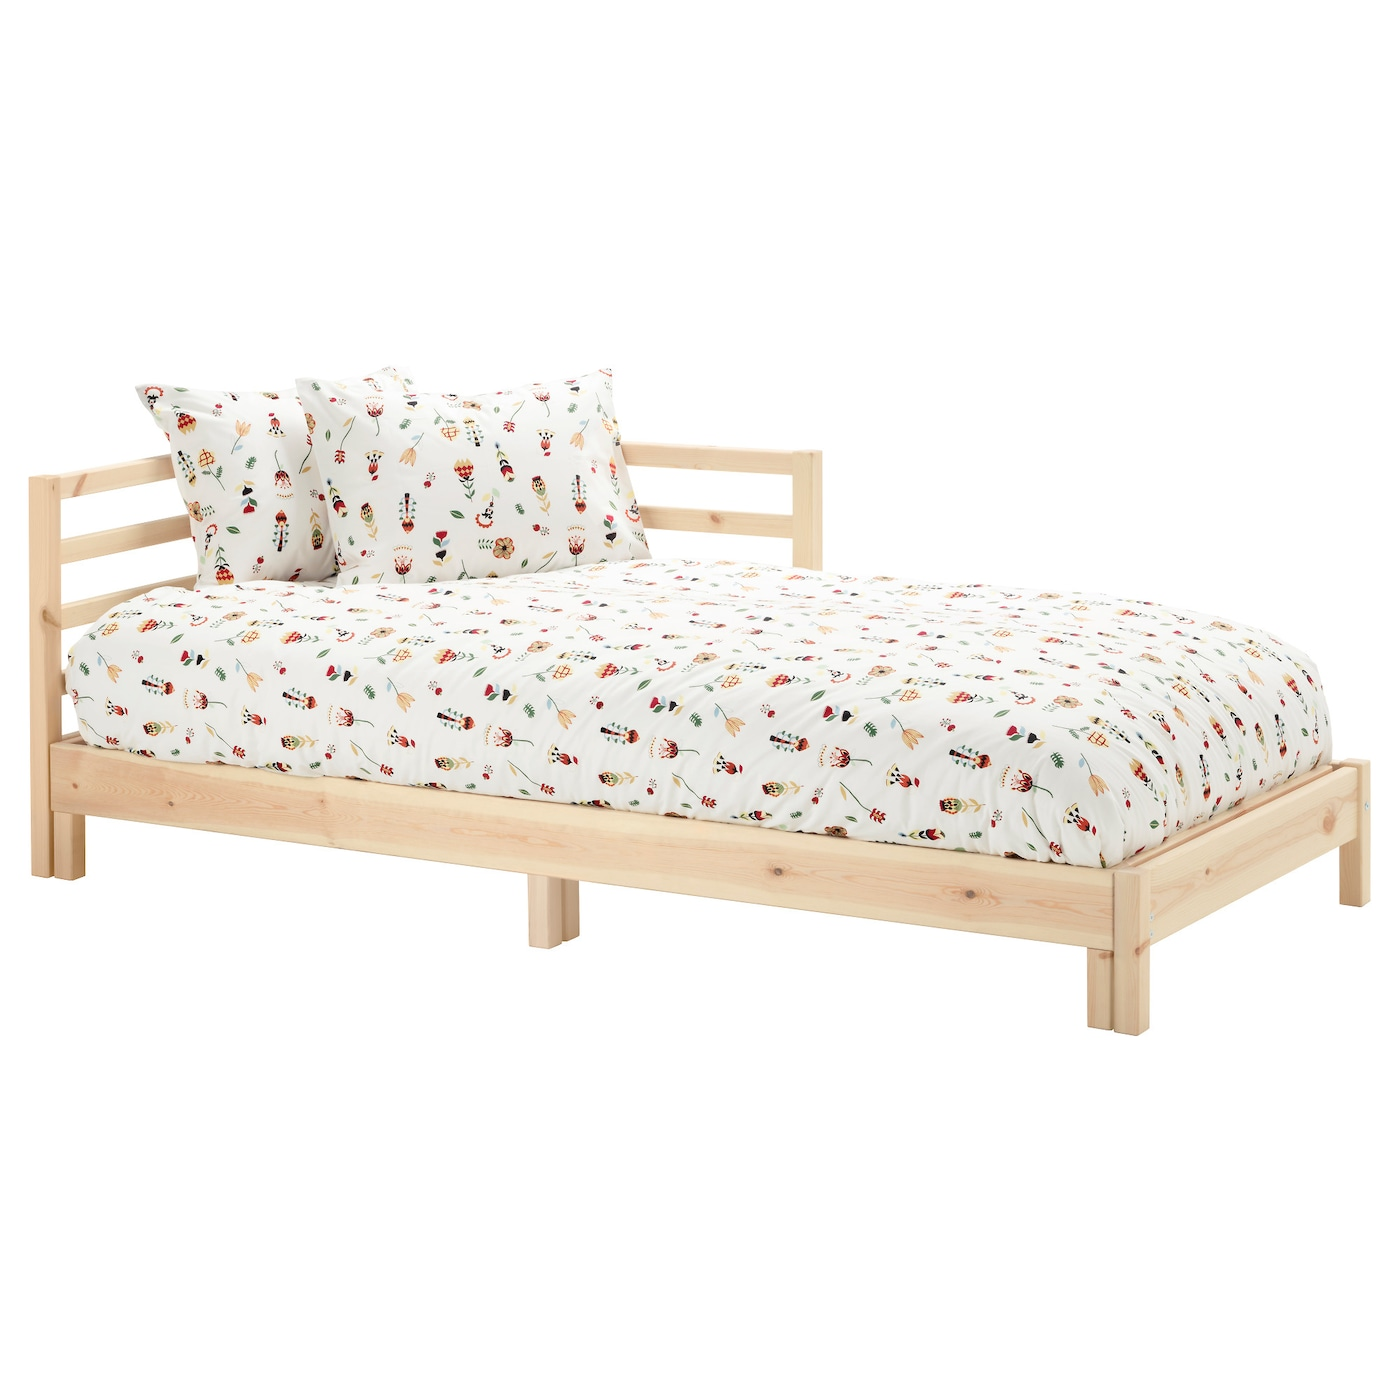 low beds ikea tarva day bed frame pine 80 x 200 cm ikea 12160